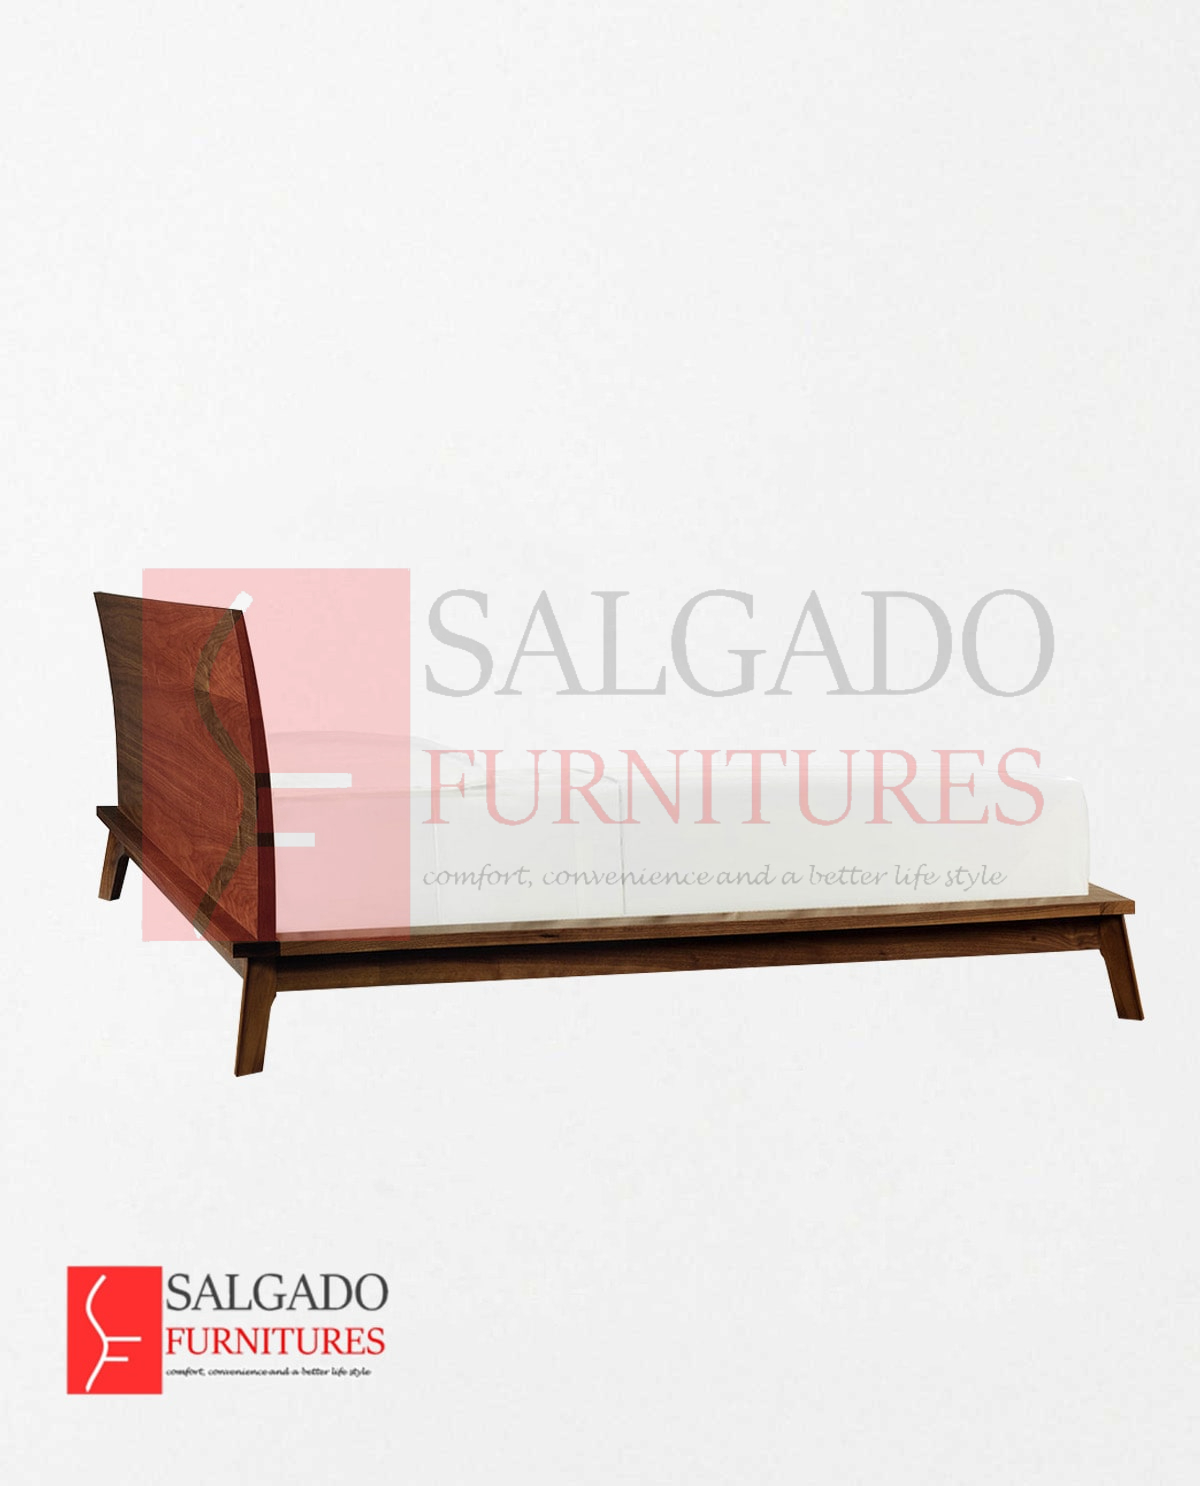 furniture-sri lanka-facebook